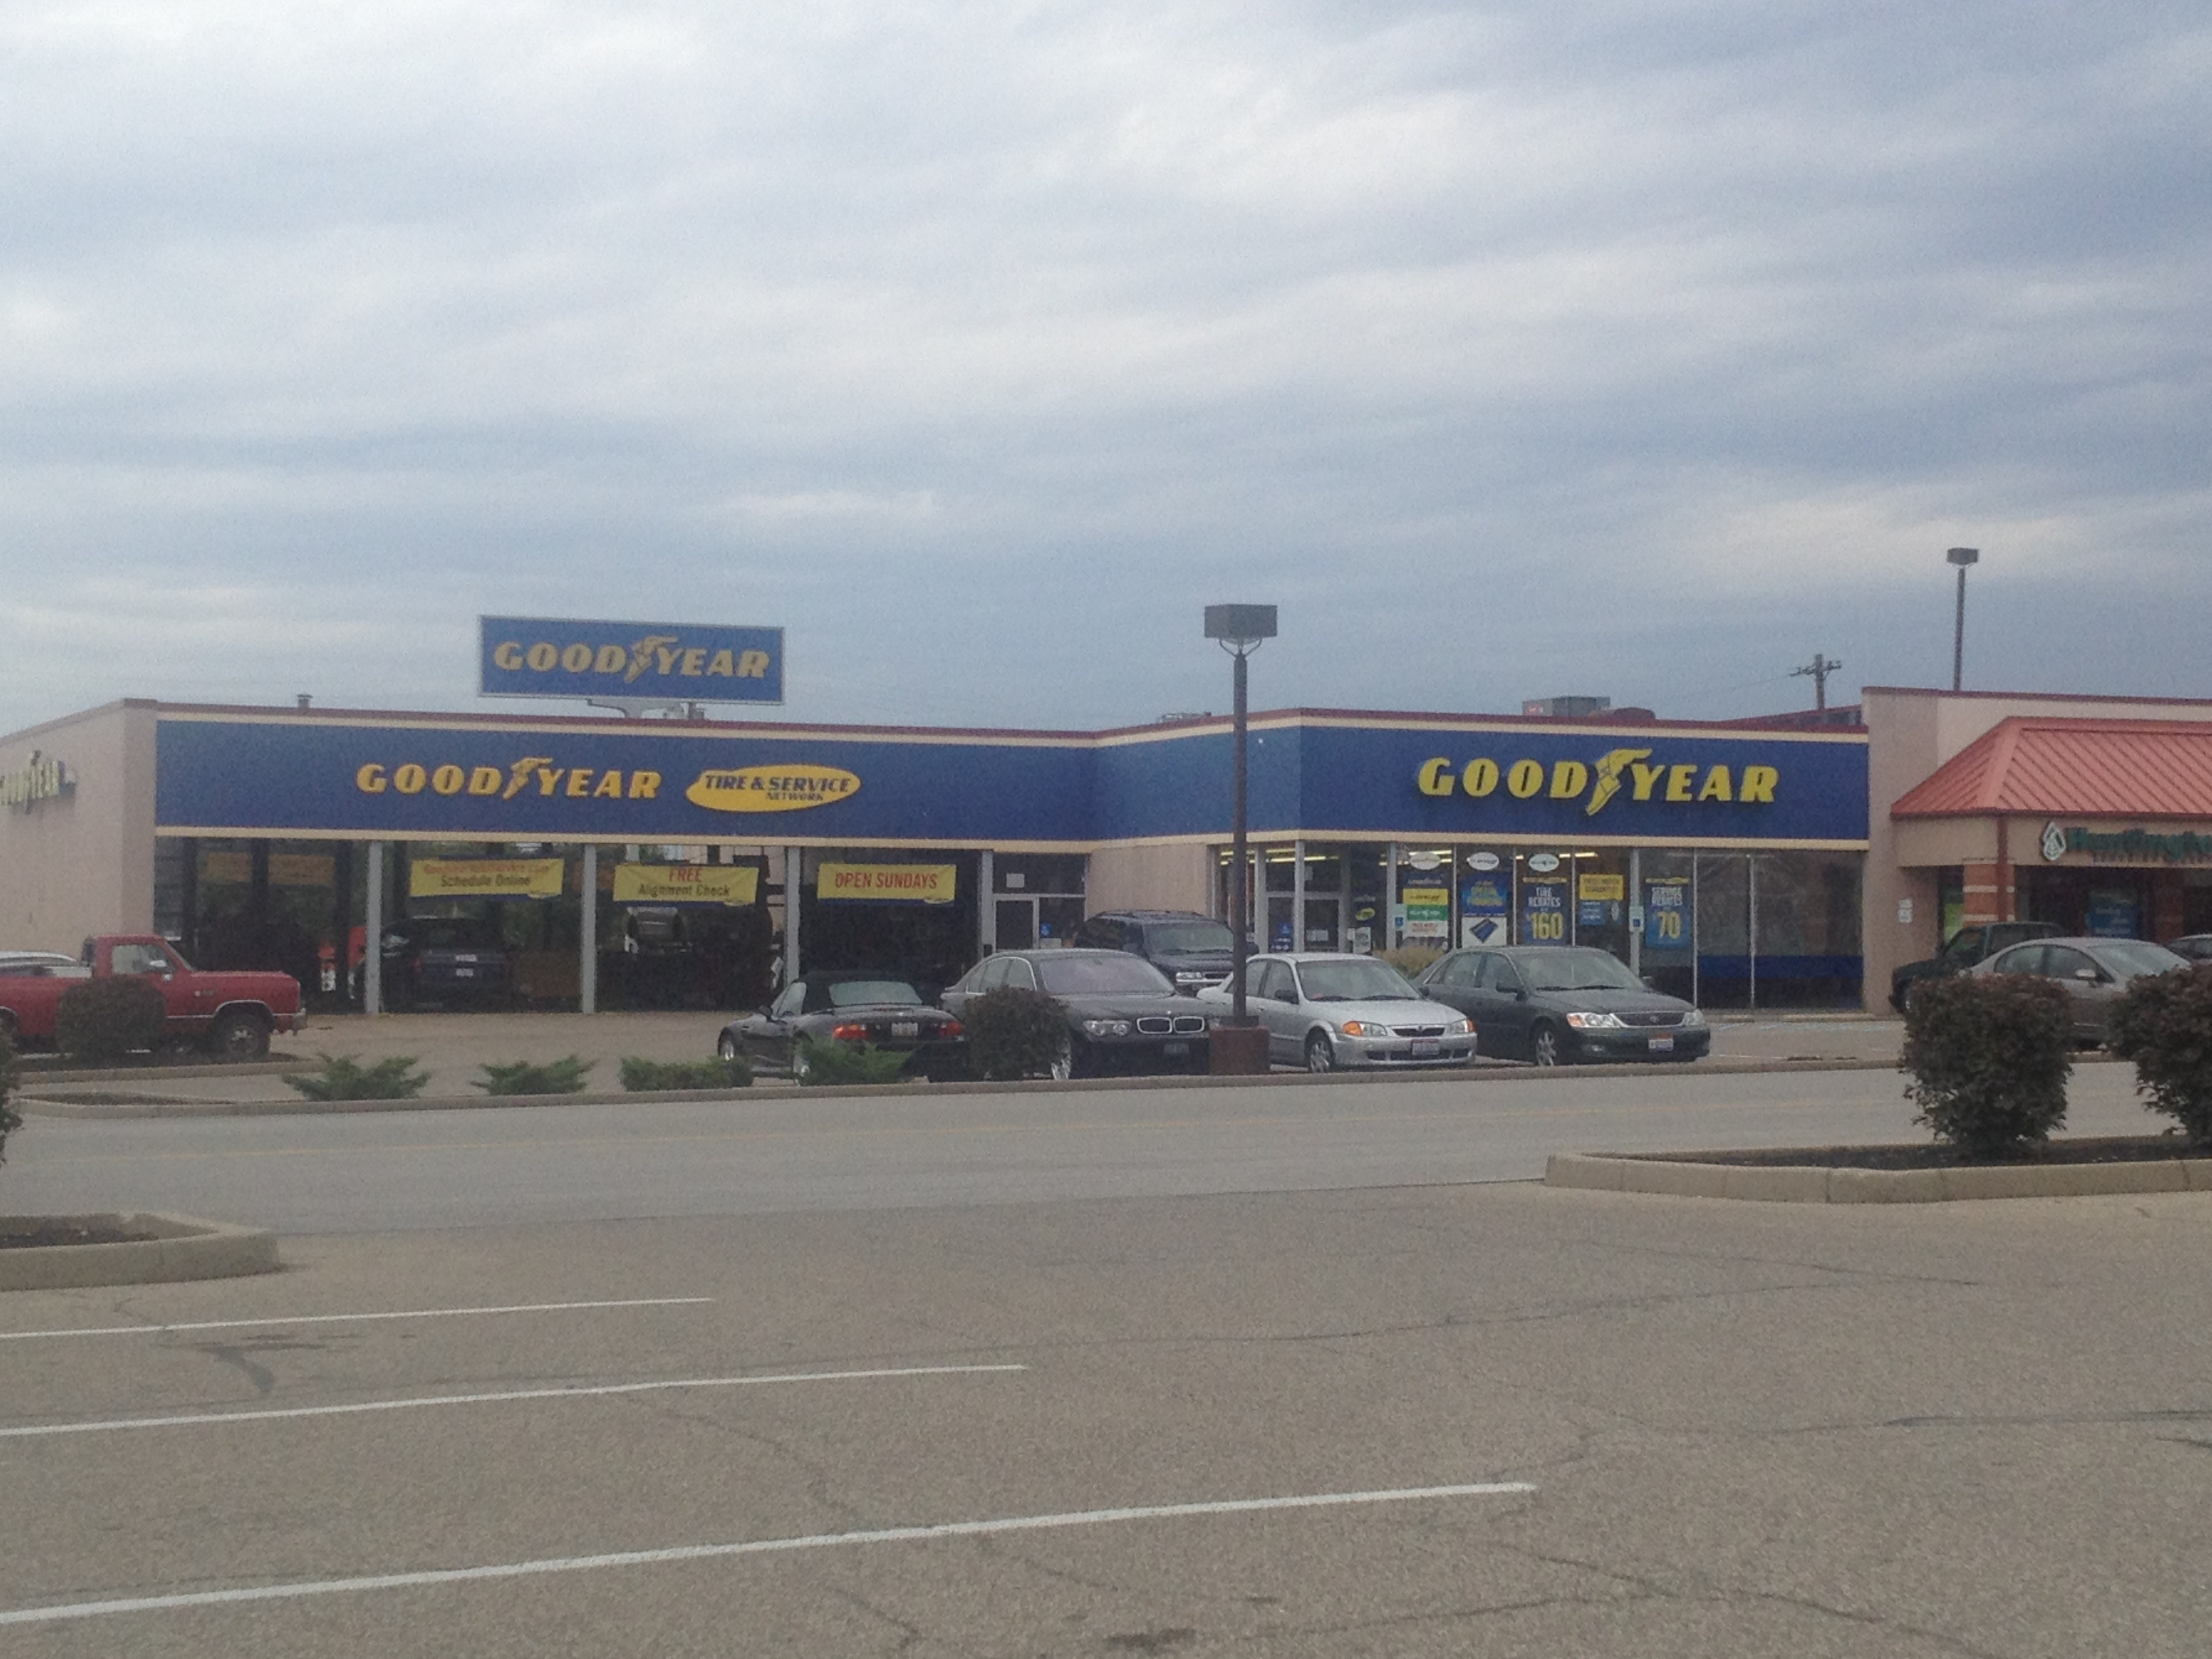 Goodyear storefront.